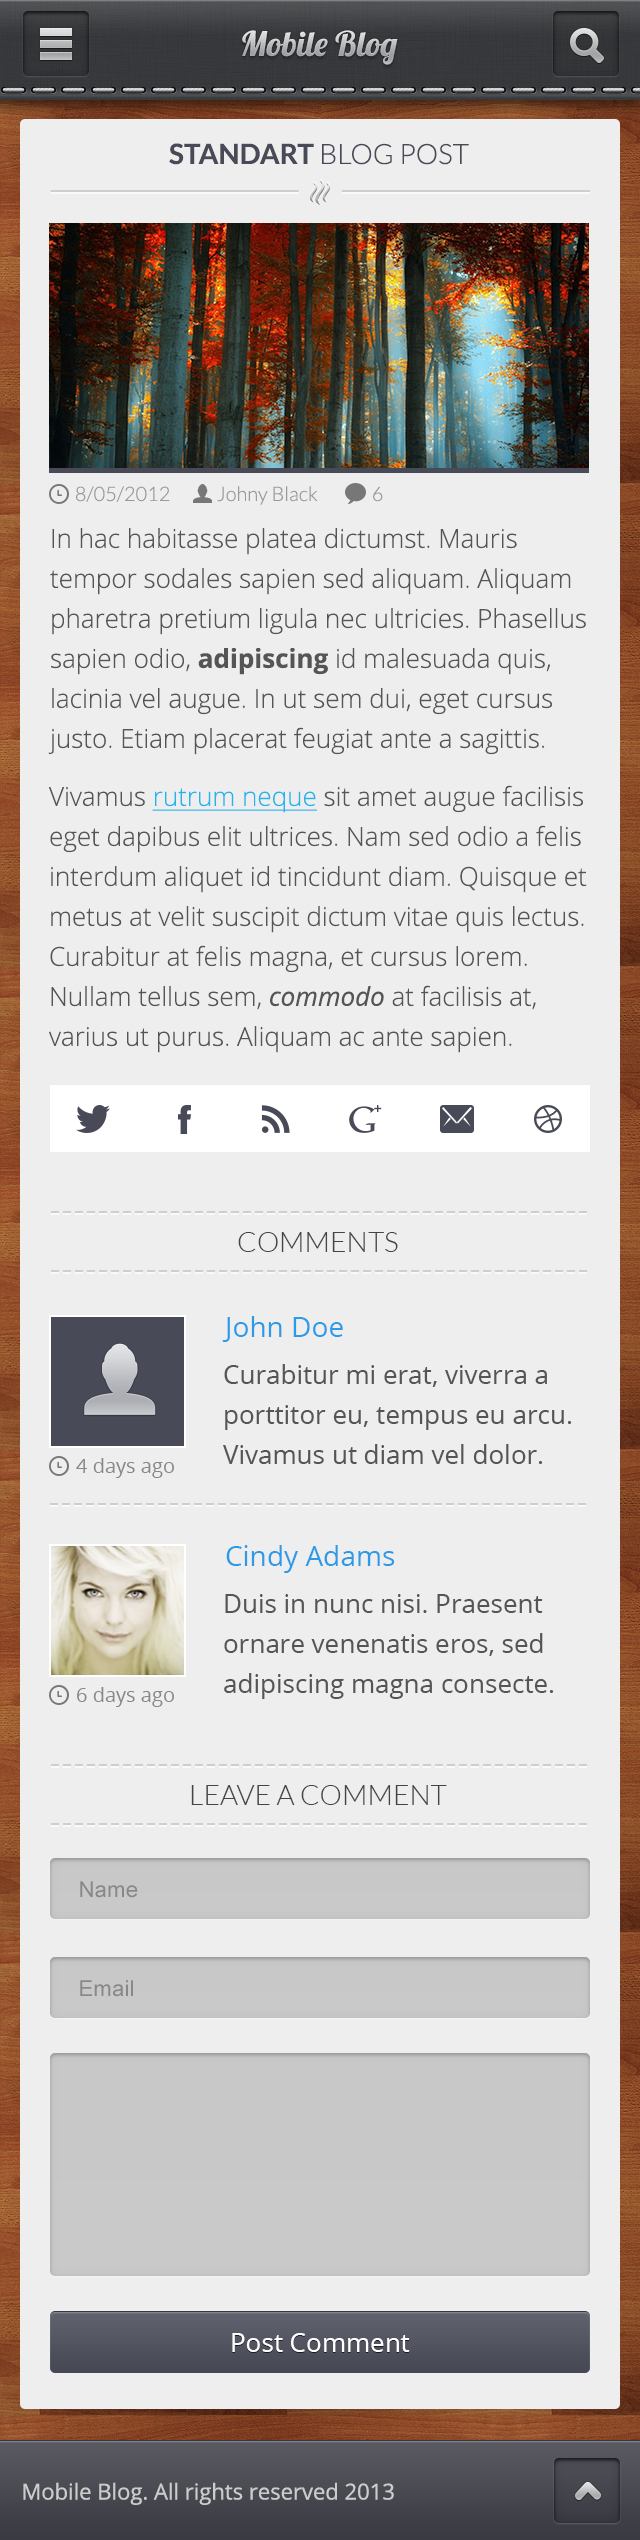 Mobile Blog PSD